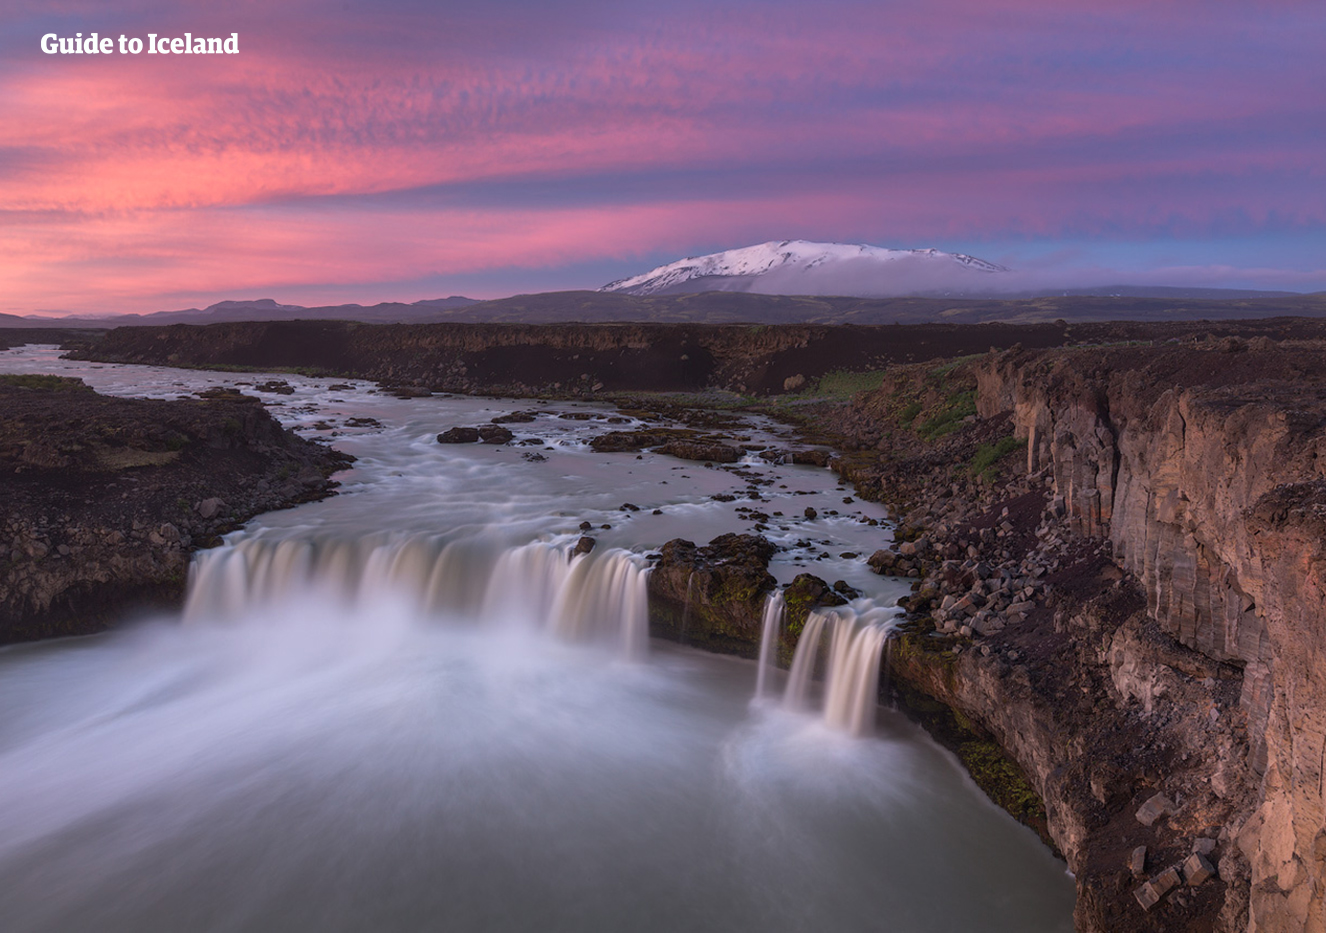 Goðafoss waterfall is located close to Akureyri town and its history matches its natural beauty.